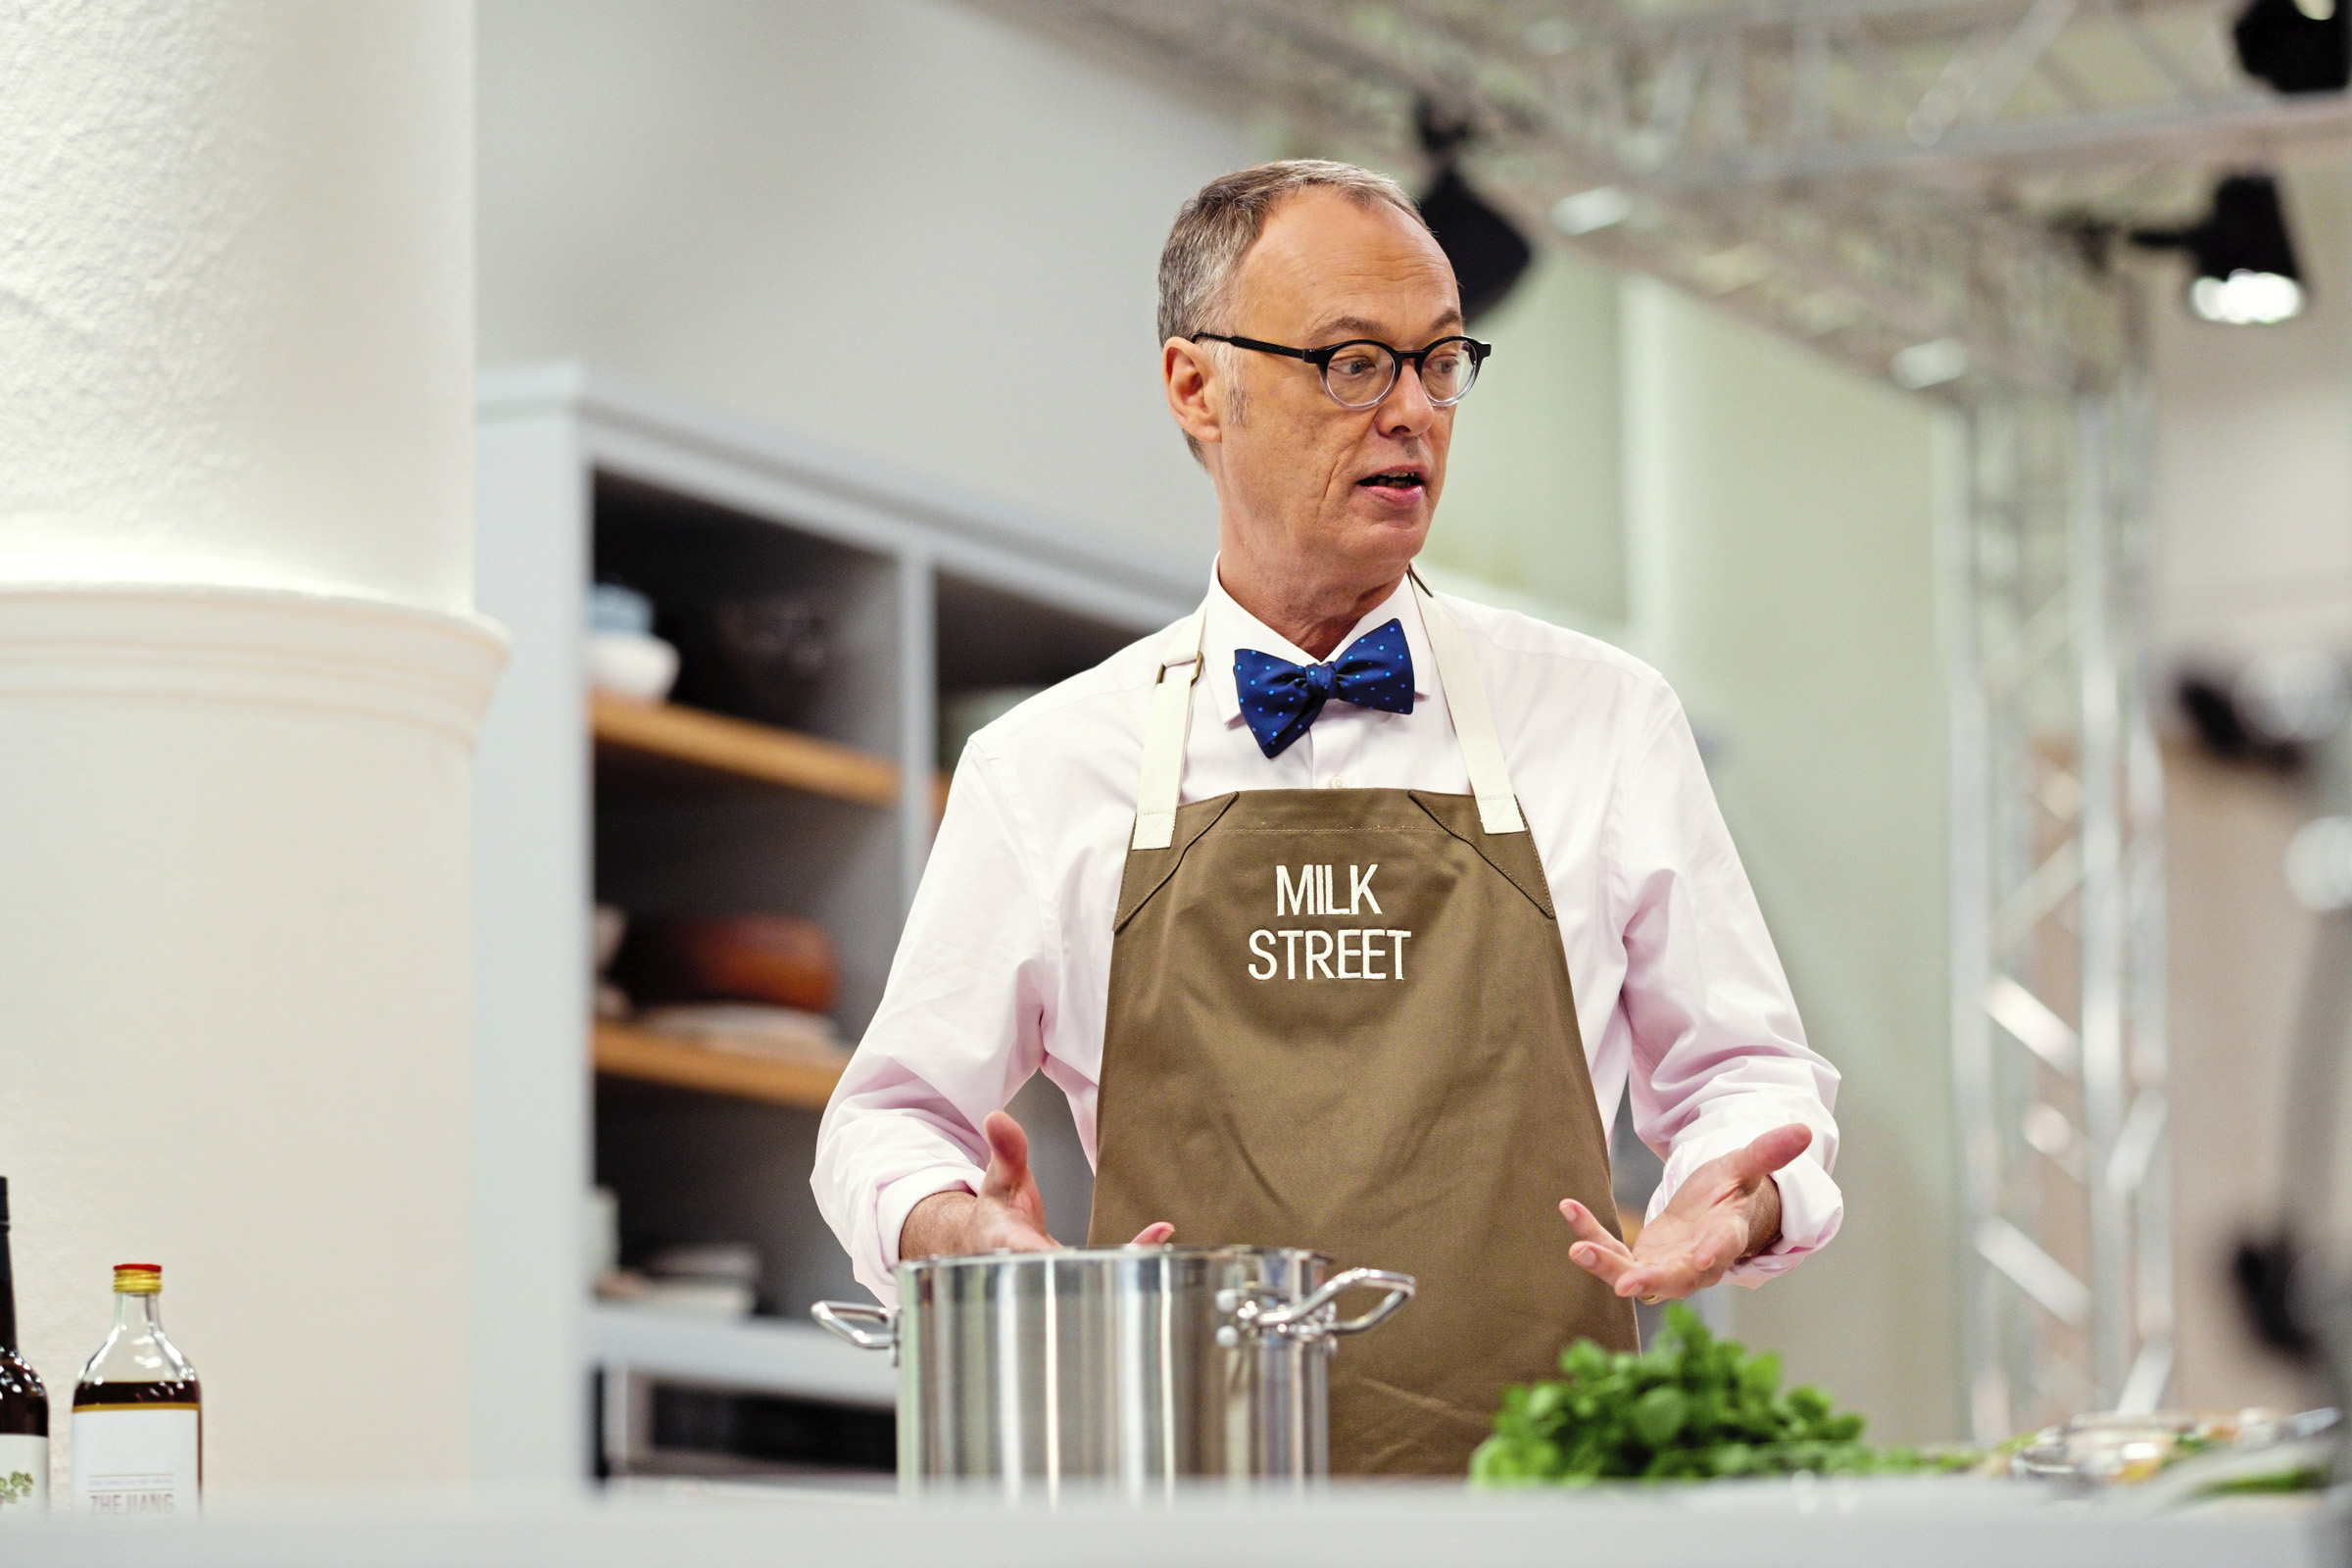 20161020-Milk-Street-0961-1 After leaving America's Test Kitchen, Christopher Kimball founded Milk Street, a media company with a magazine, cooking school, radio programs and now a cookbook.